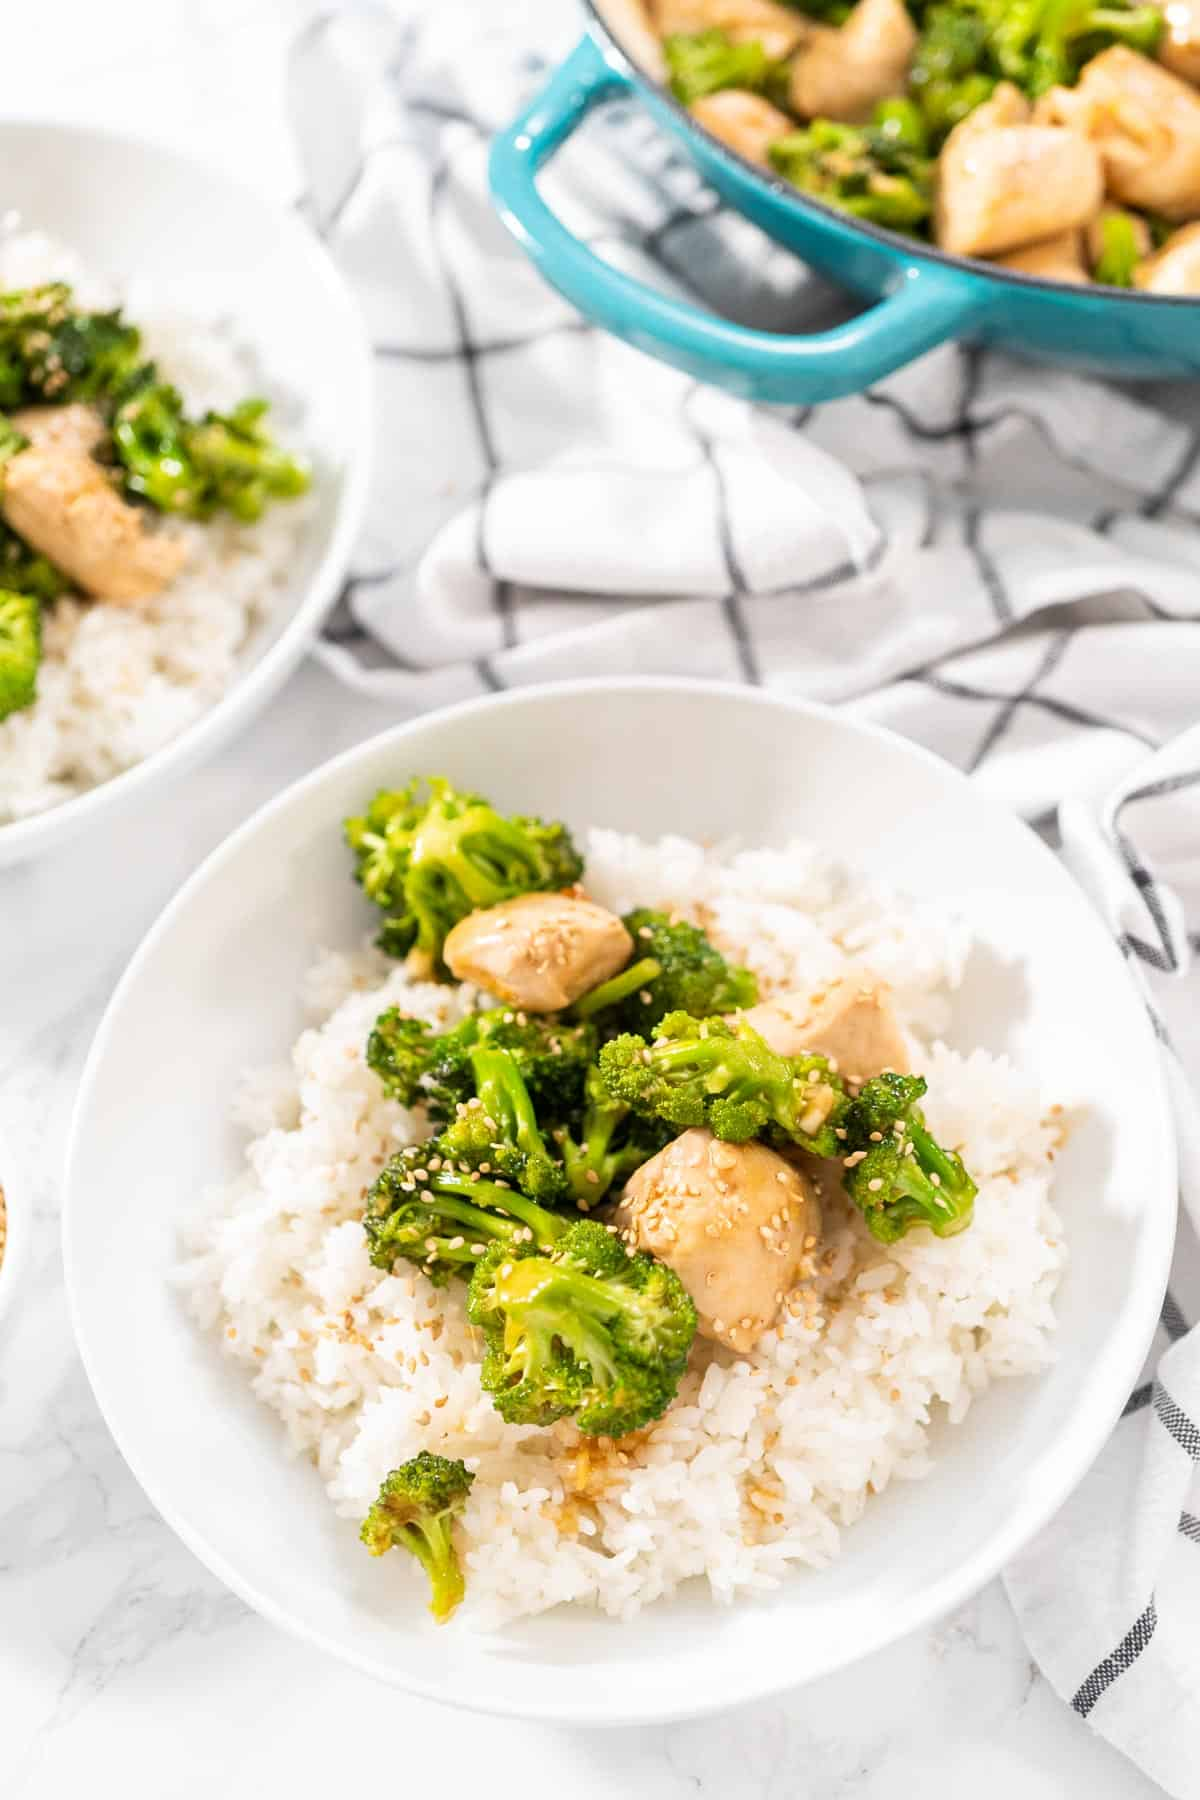 A white bowl filled with white rice and Easy Broccoli Chicken Stir Fry.